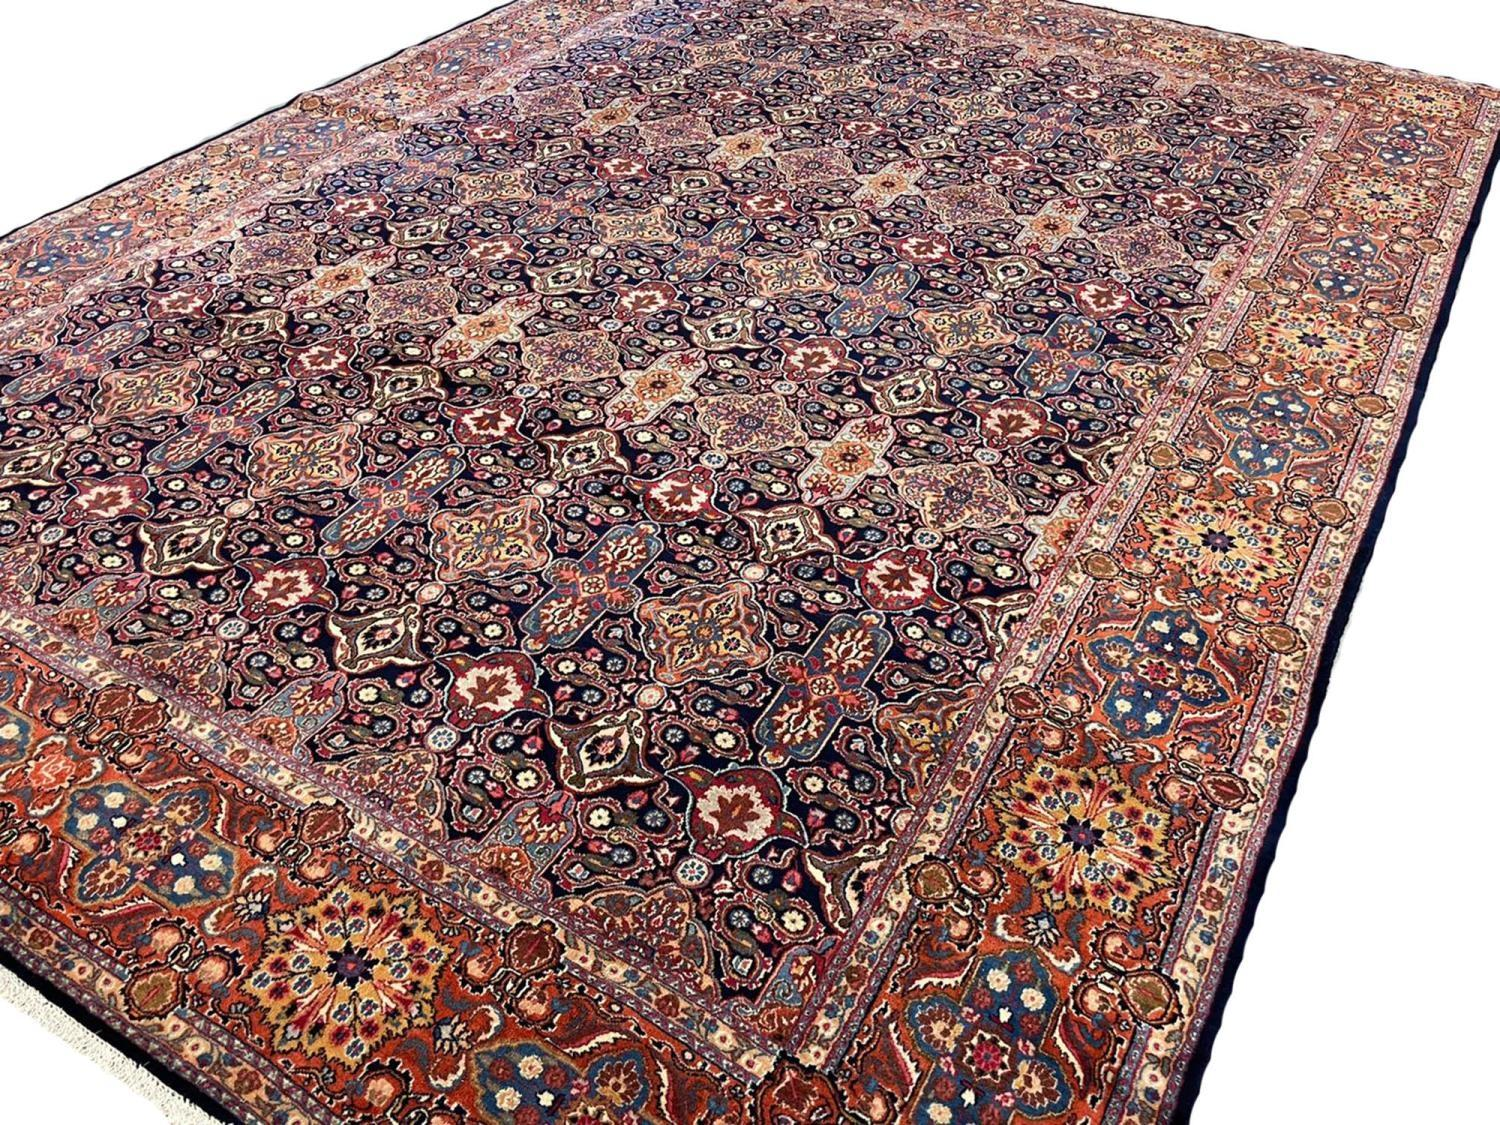 FINE ANTIQUE PERSIAN KHORASSAN CARPET, 340cm x 260cm. - Image 2 of 5